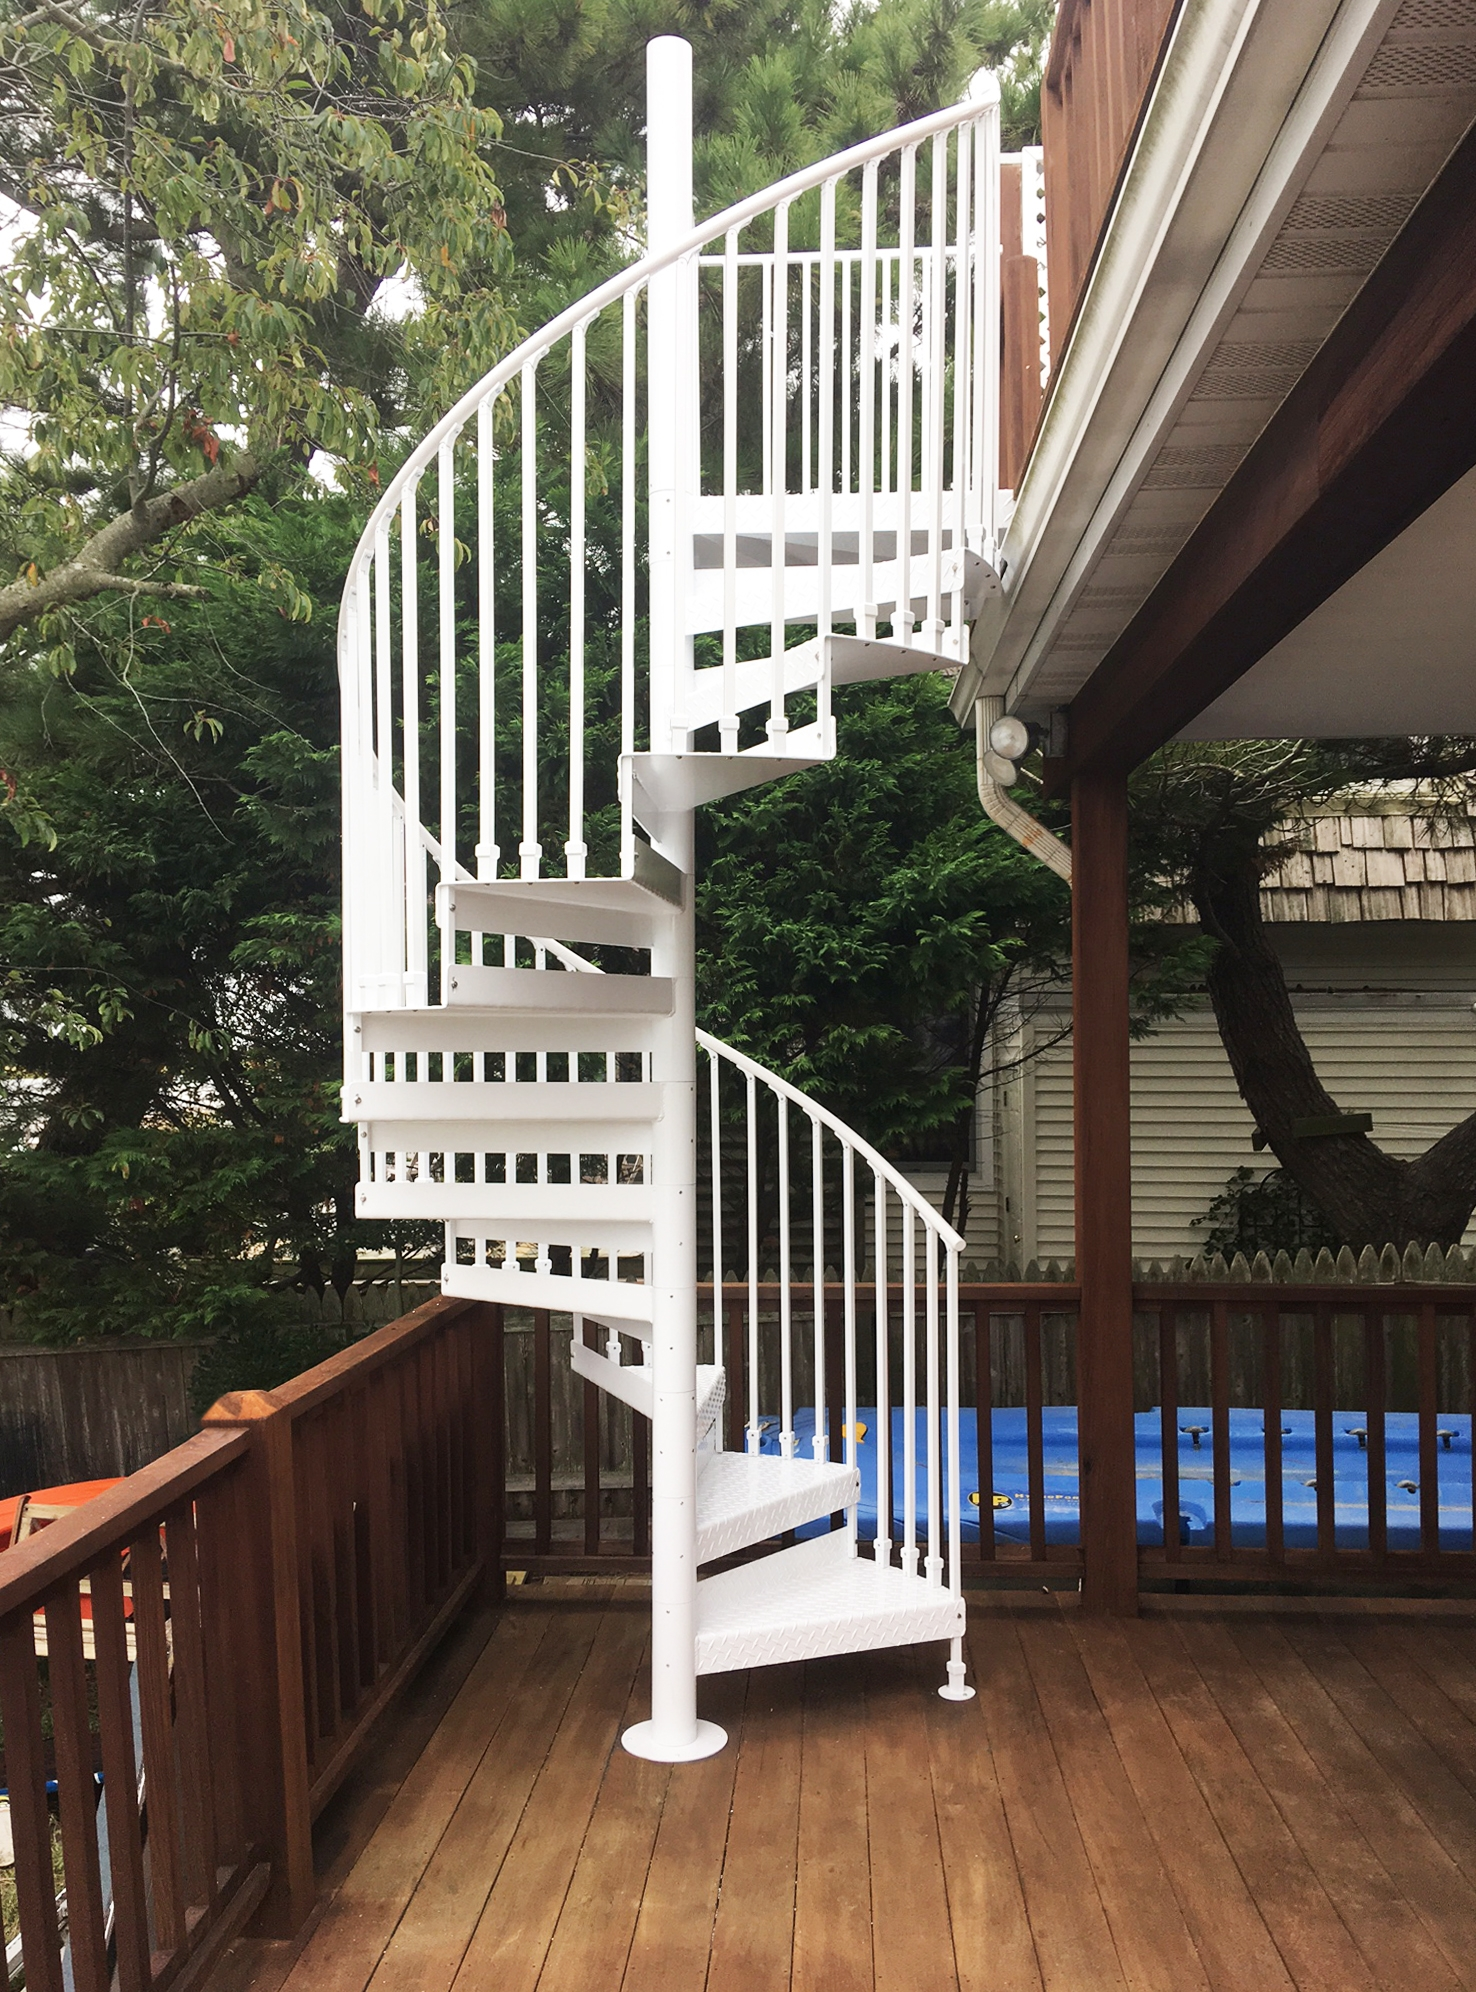 Discover The Ultimate Staircase Alternative Trex Spiral Stairs | Spiral Staircase With Slide | Modern | 1930'S | Interior | Cool | Stainless Steel Spiral